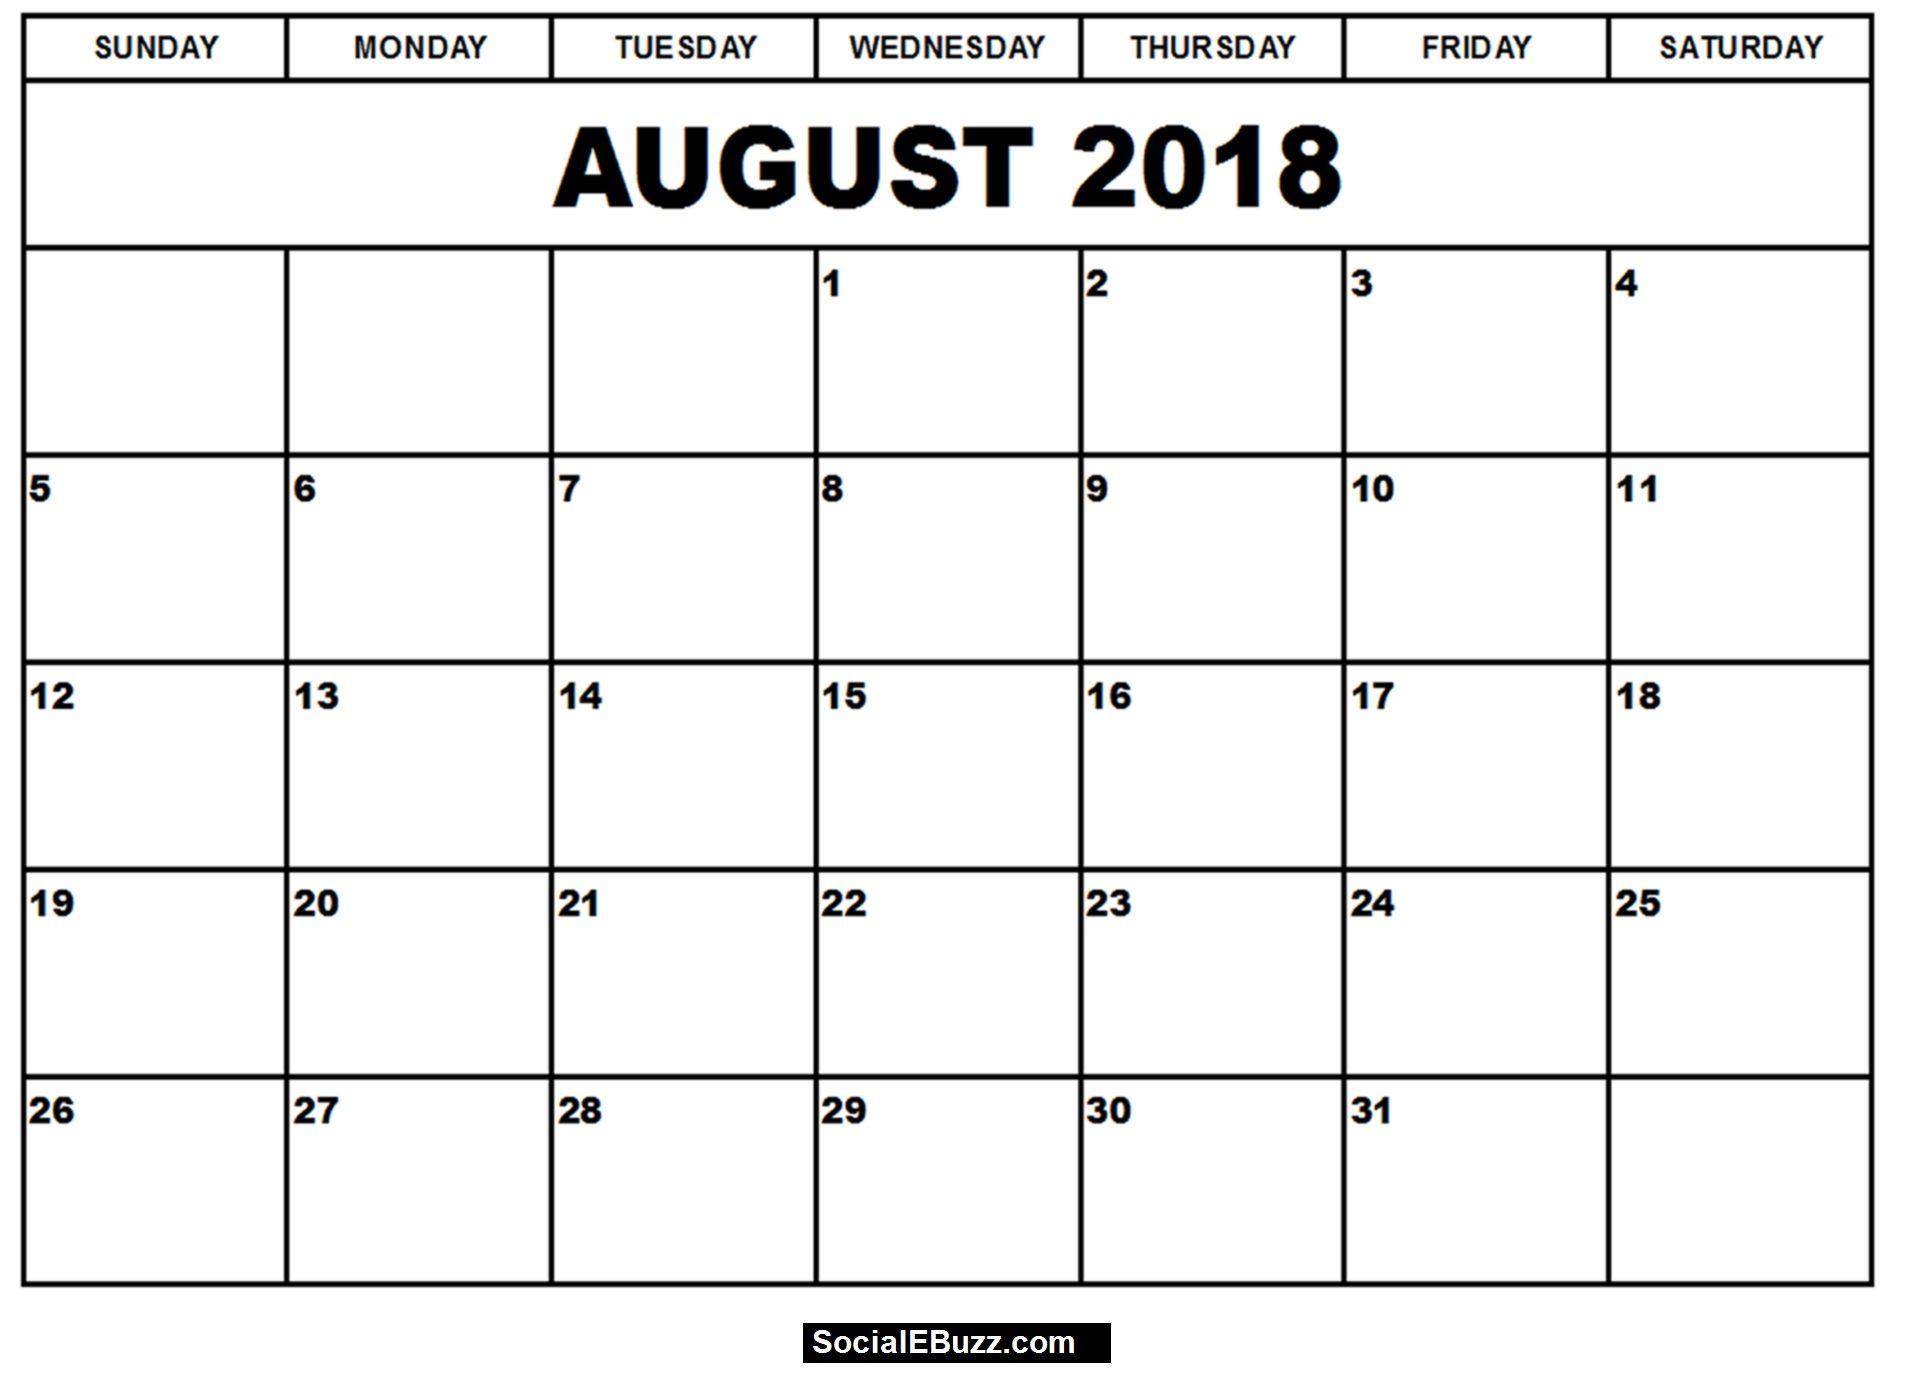 Blank August 2018 Calendar, August 2018 Printable Calendar, Calendar for August Blank Calendar Template